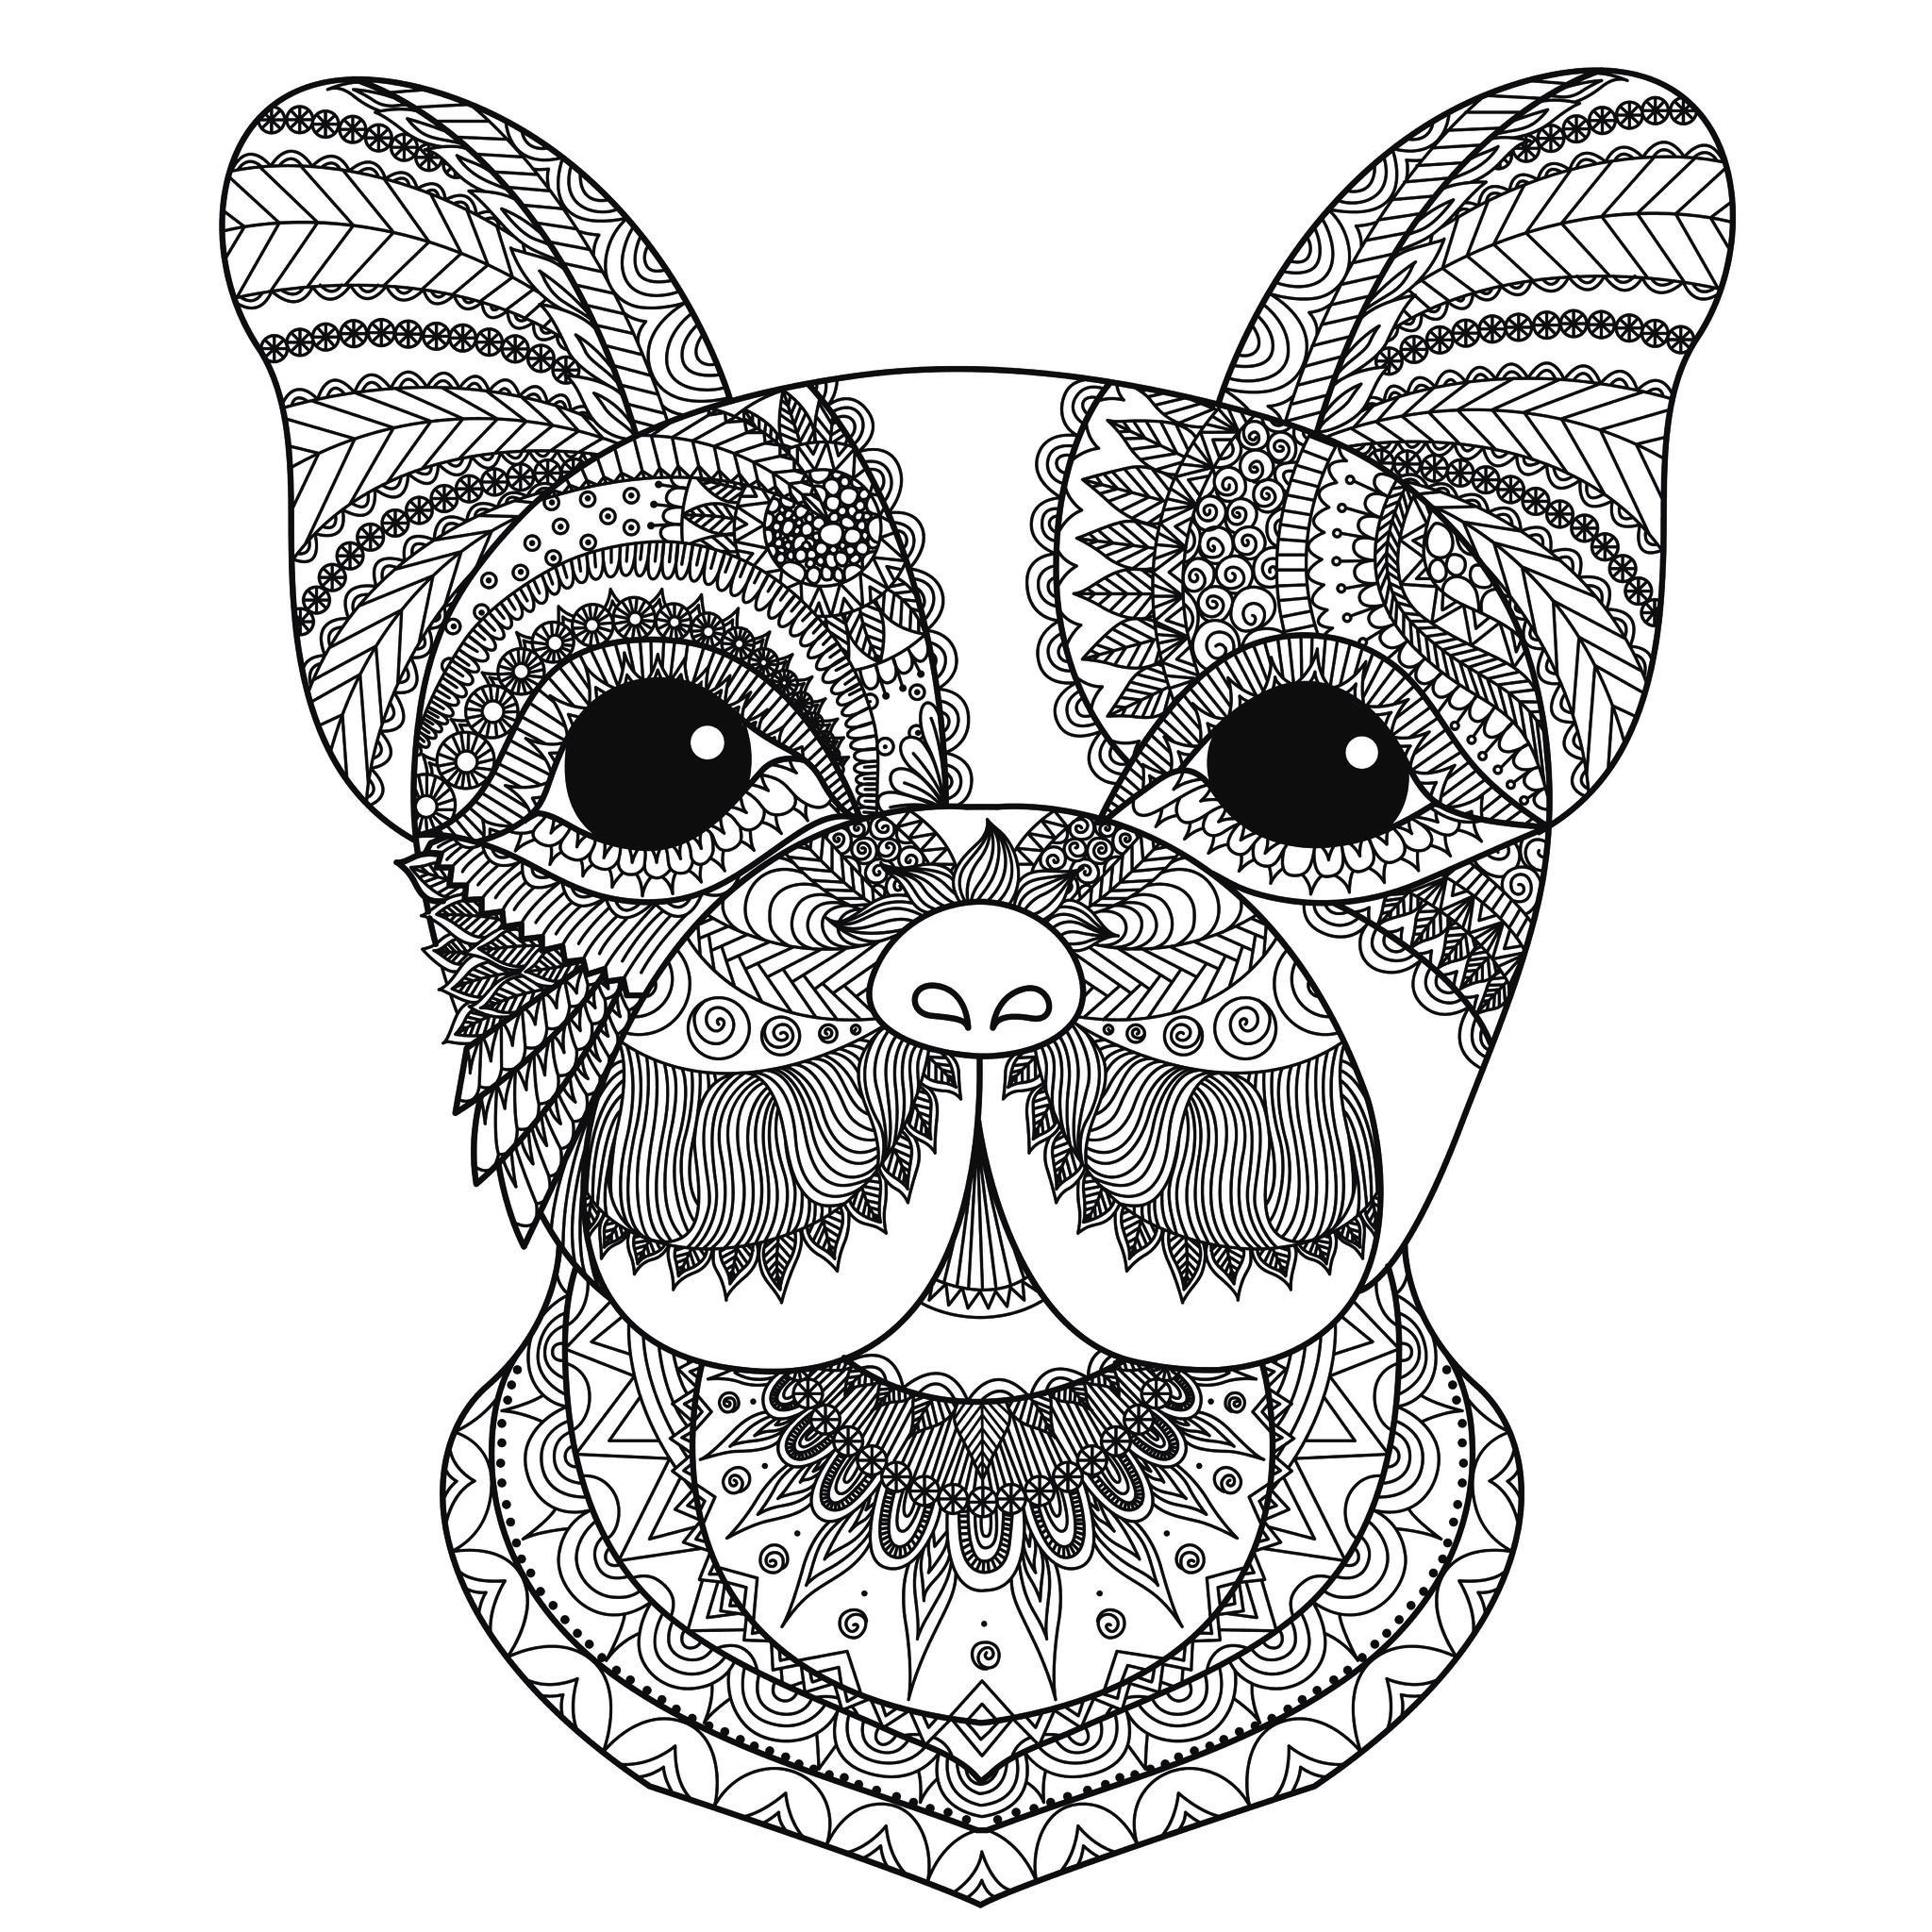 Dog head bimdeedee - Dogs Adult Coloring Pages